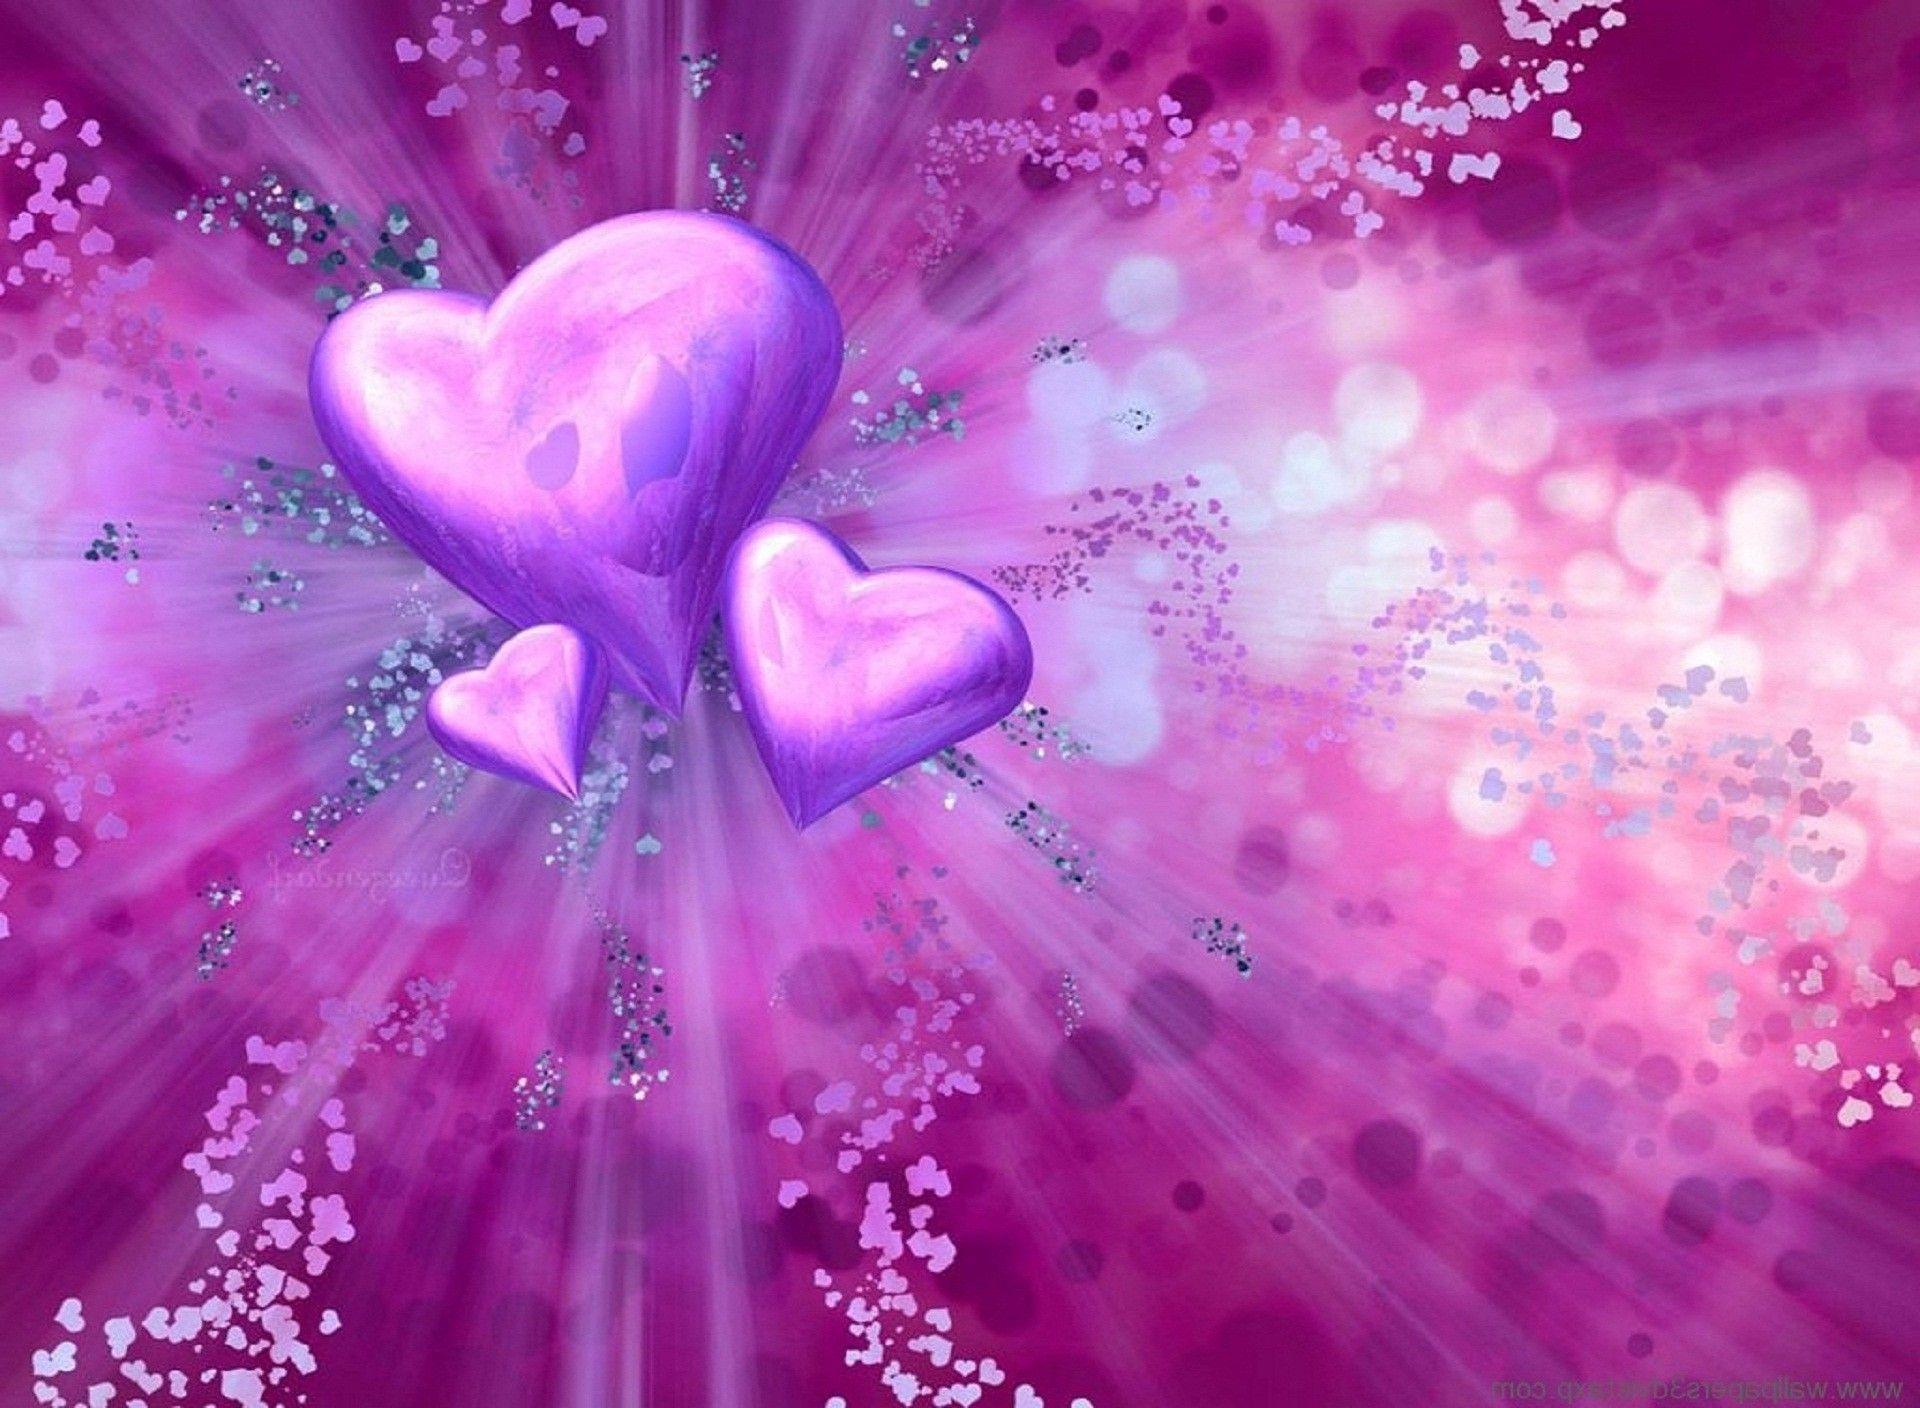 3d Love Wallpaper For Pc : Love Wallpapers 3D - Wallpaper cave